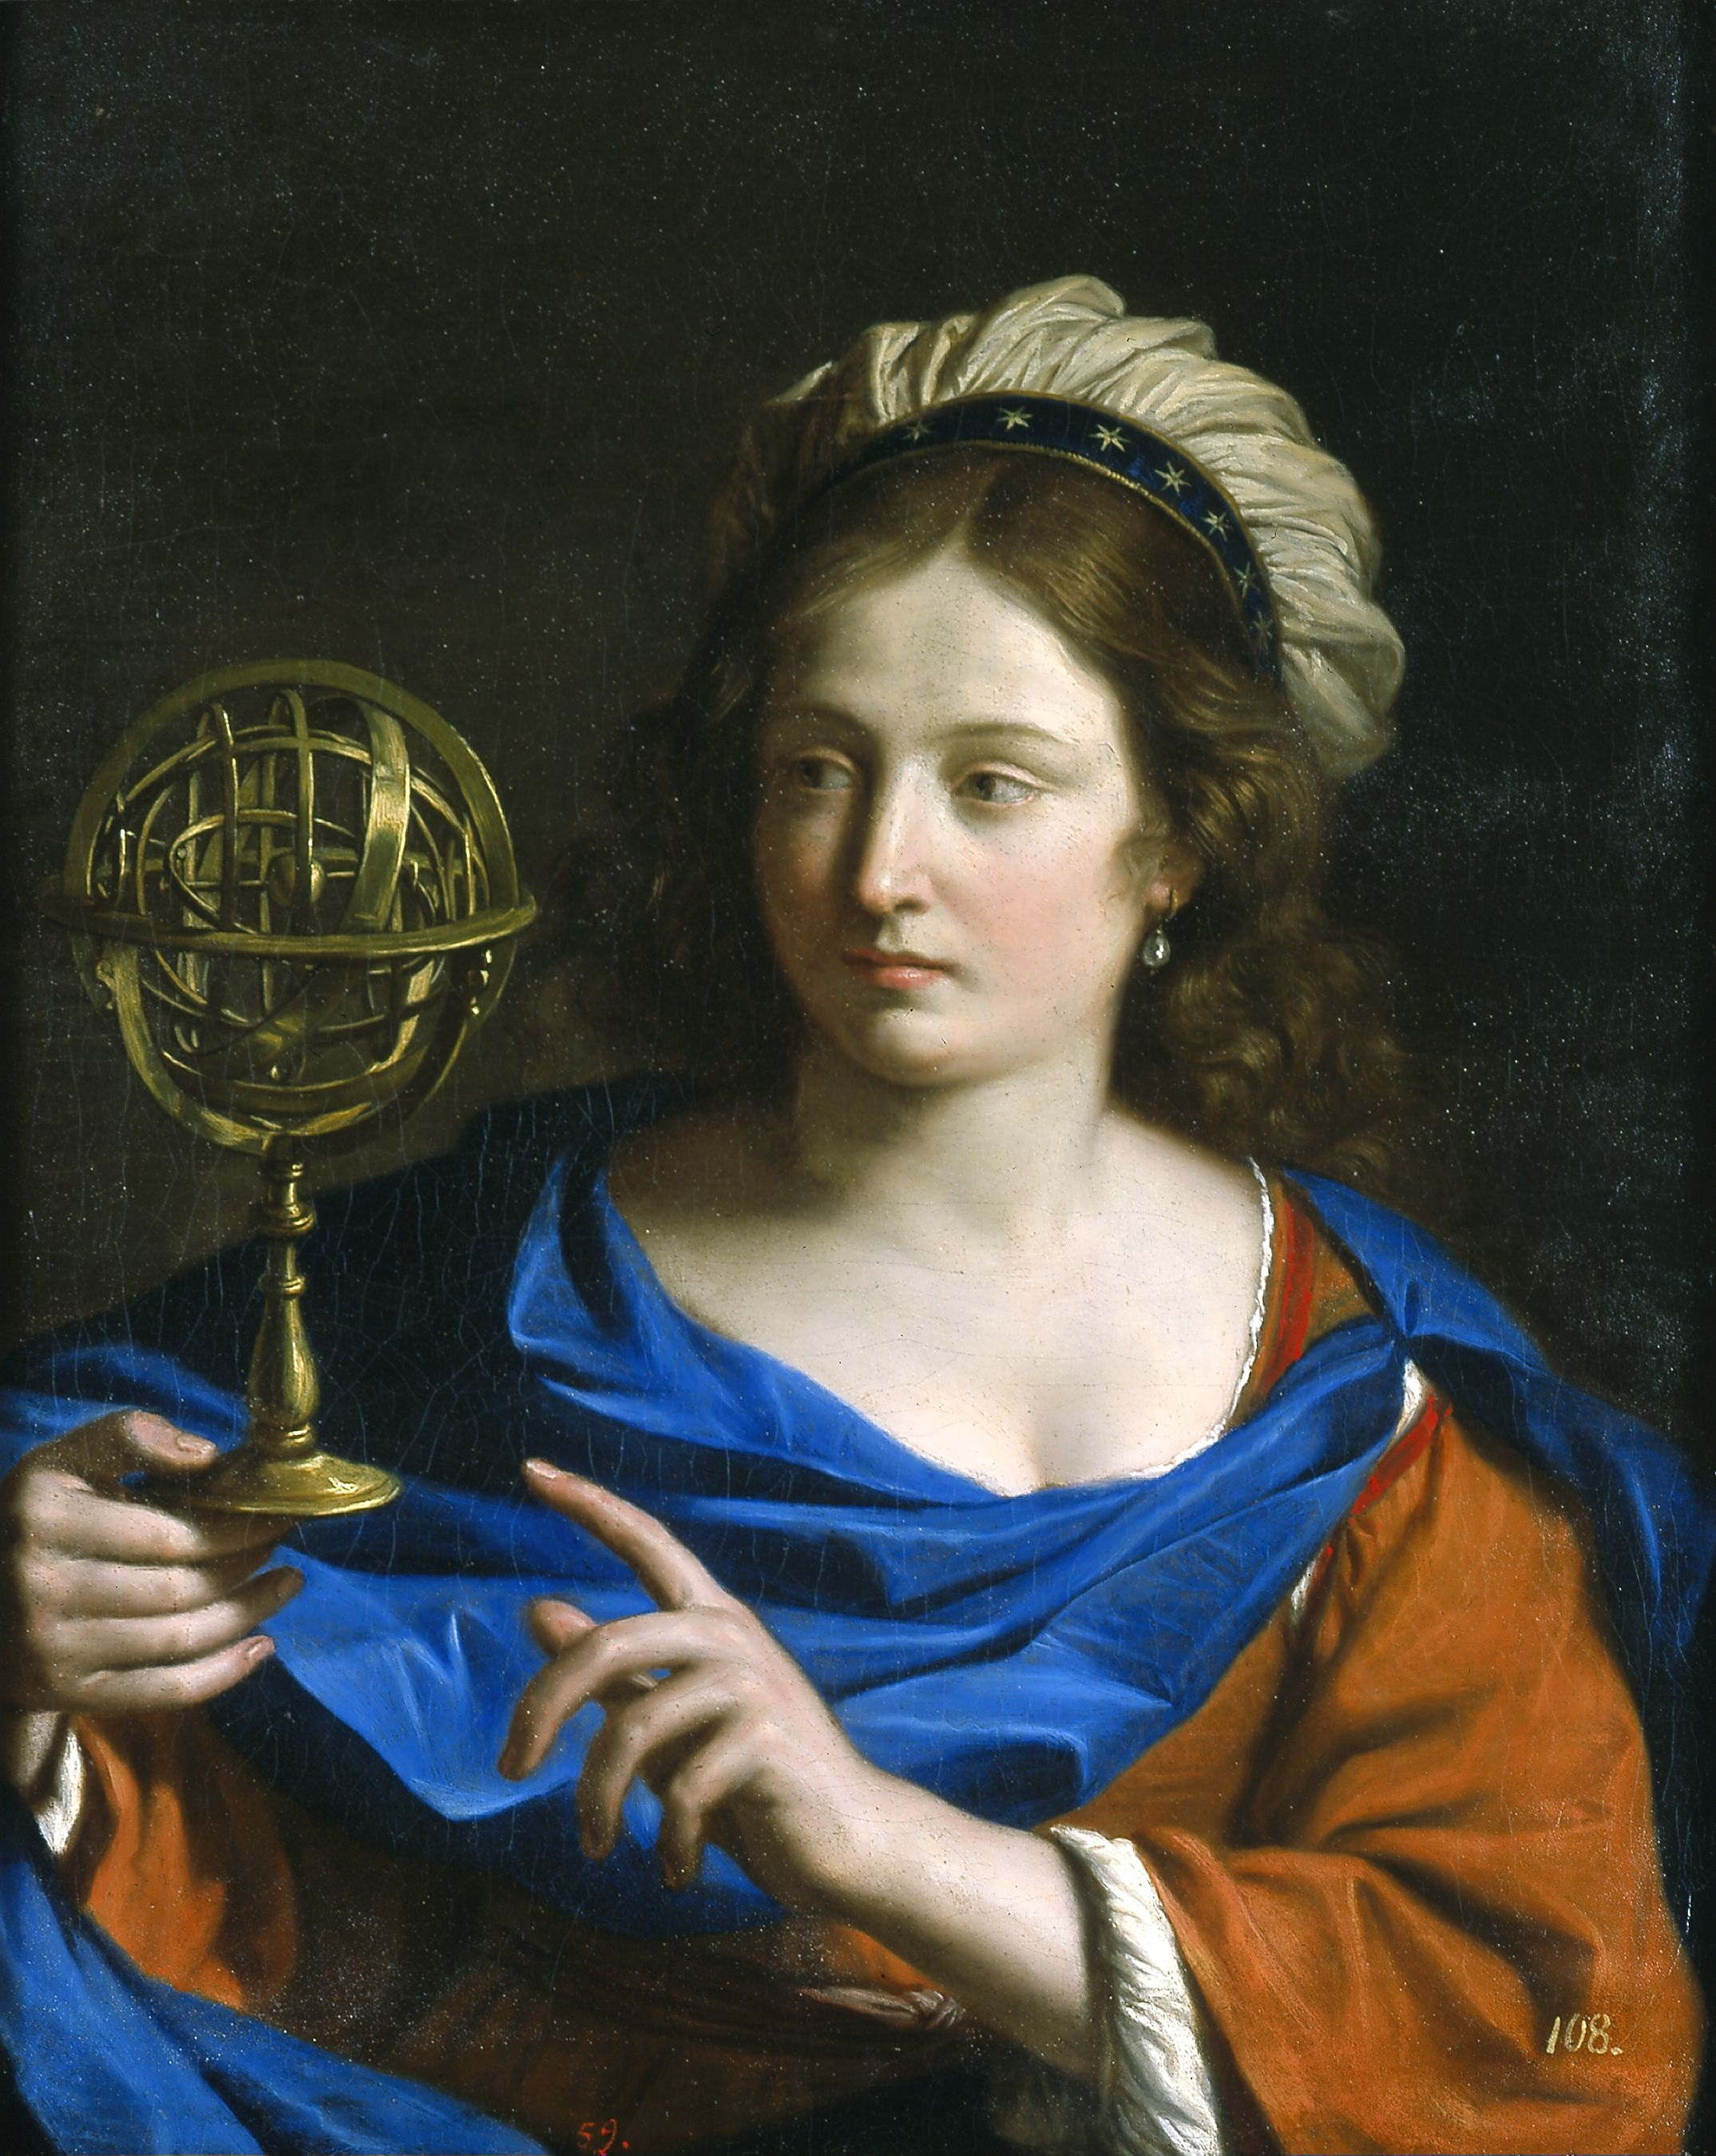 https://upload.wikimedia.org/wikipedia/commons/3/37/Guercino_Astrologia.jpg